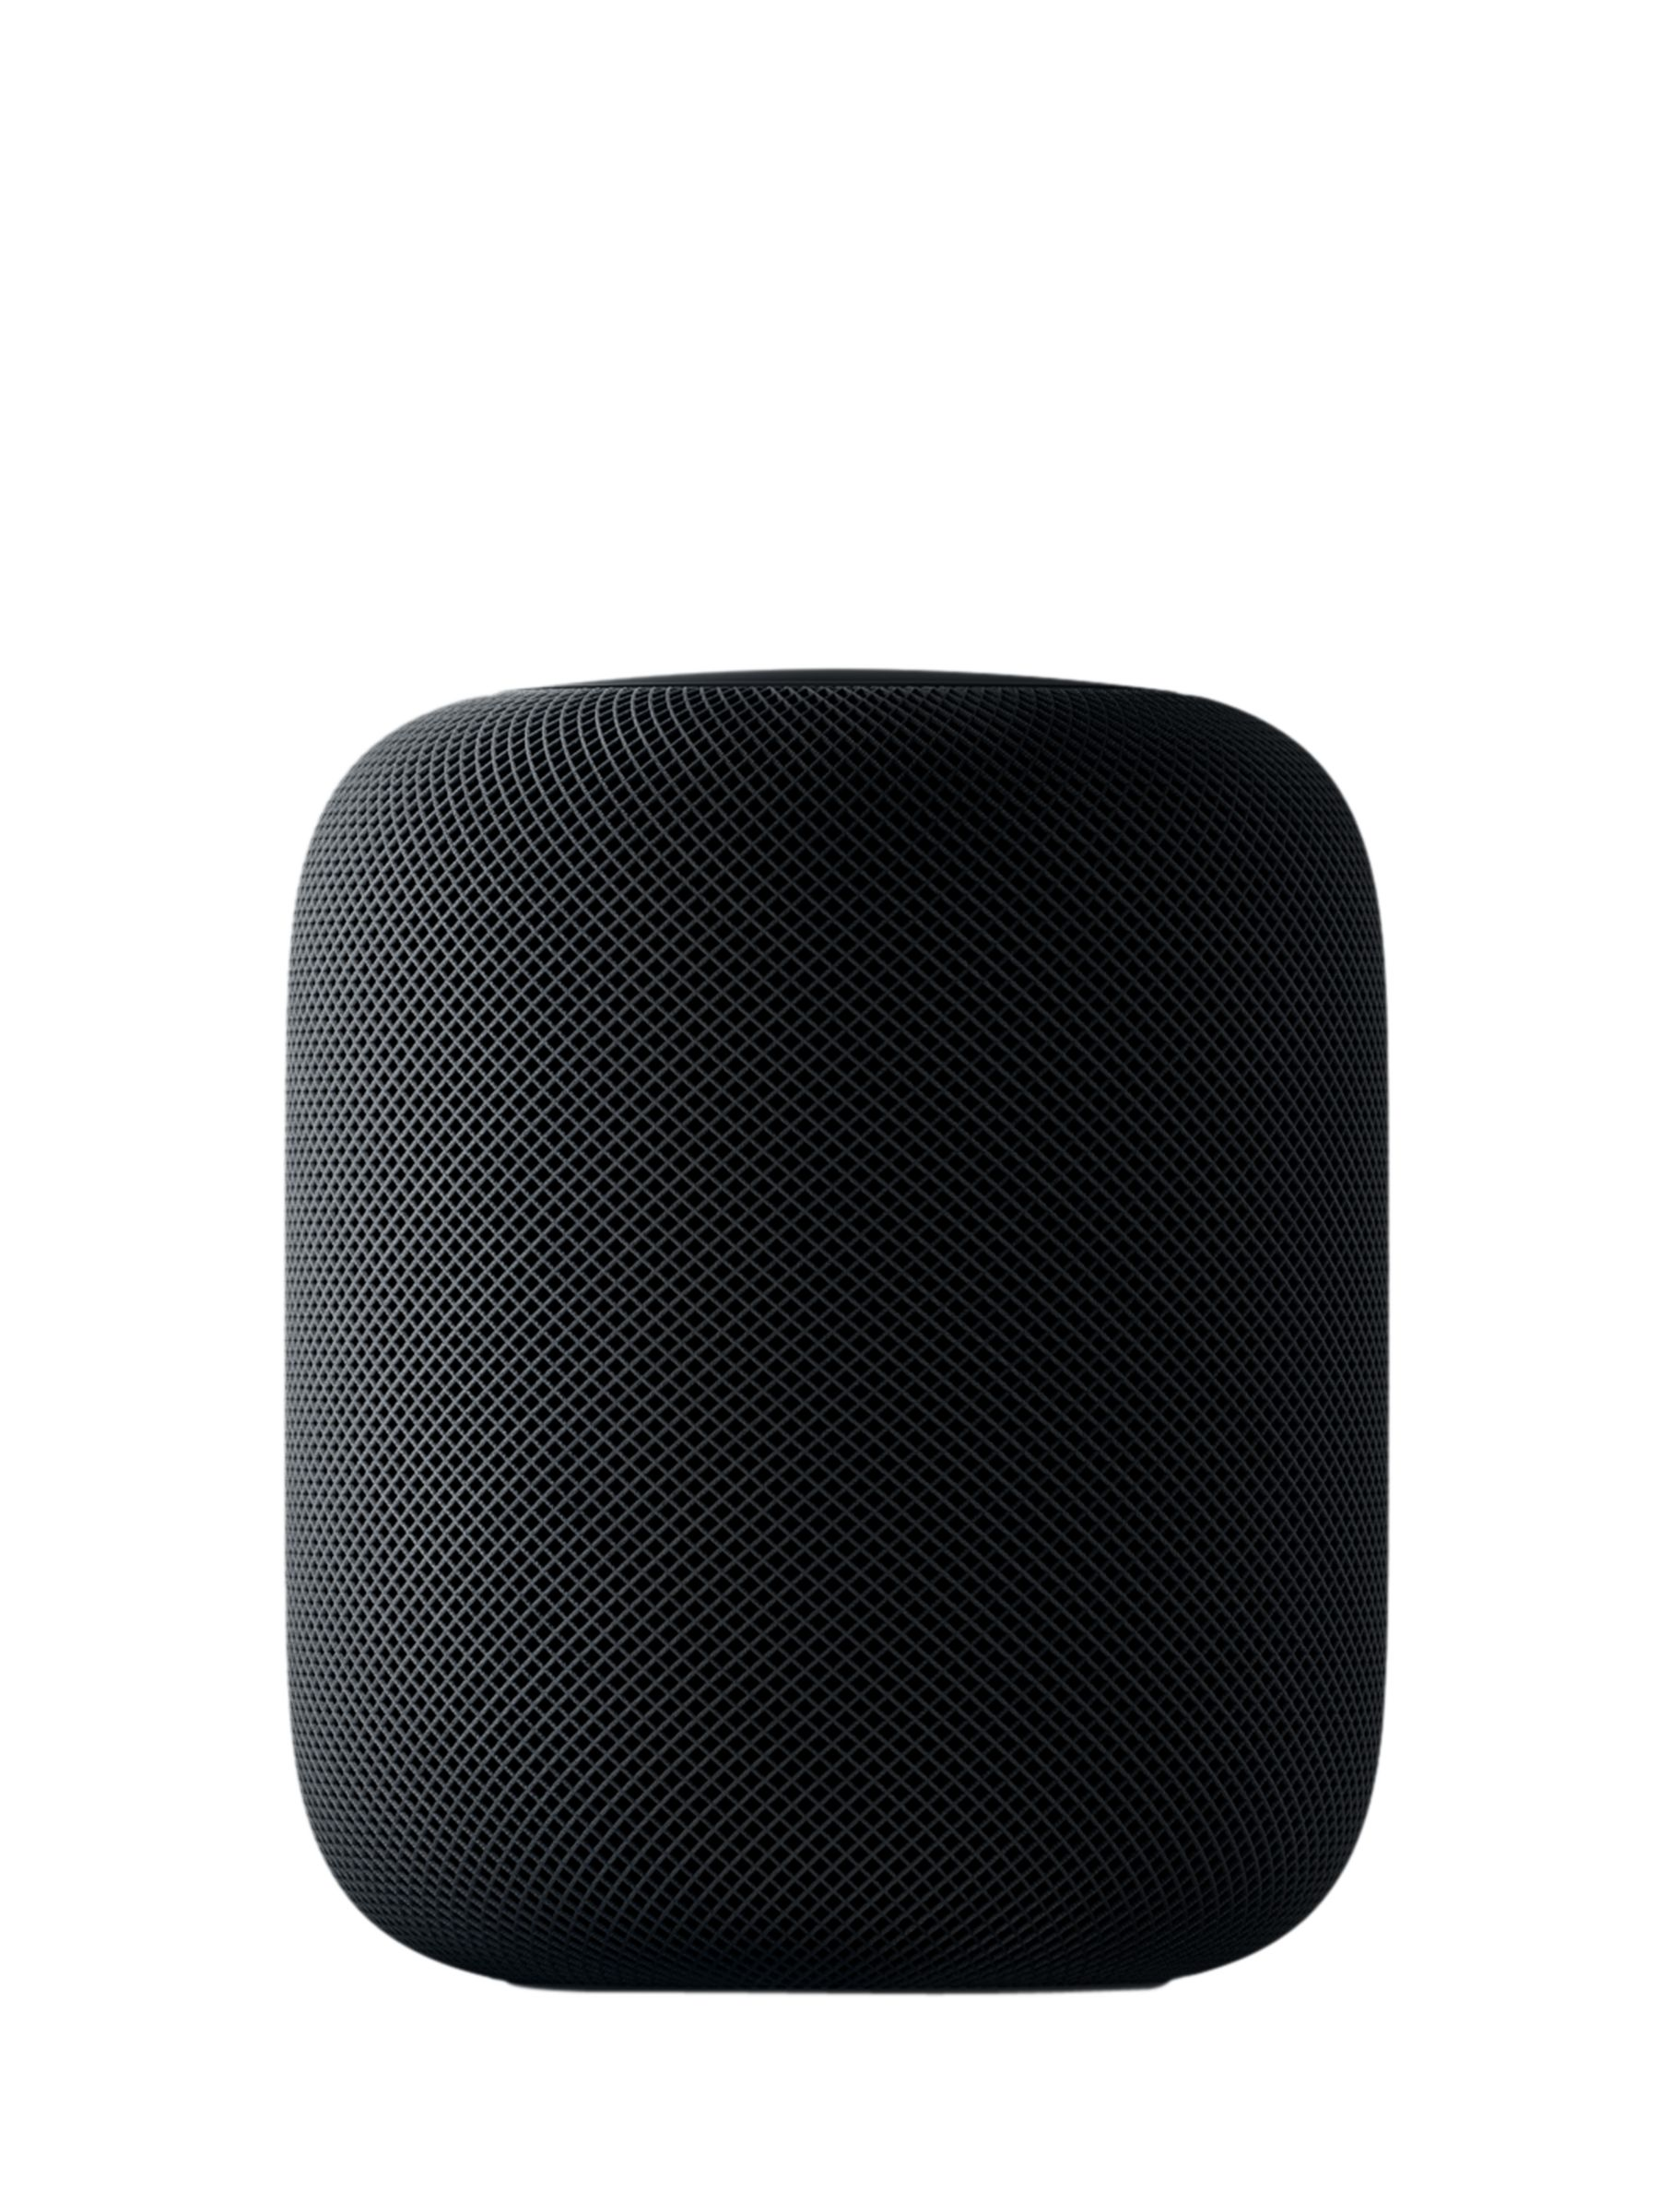 Buy Apple HomePod, Space Grey Online at johnlewis.com